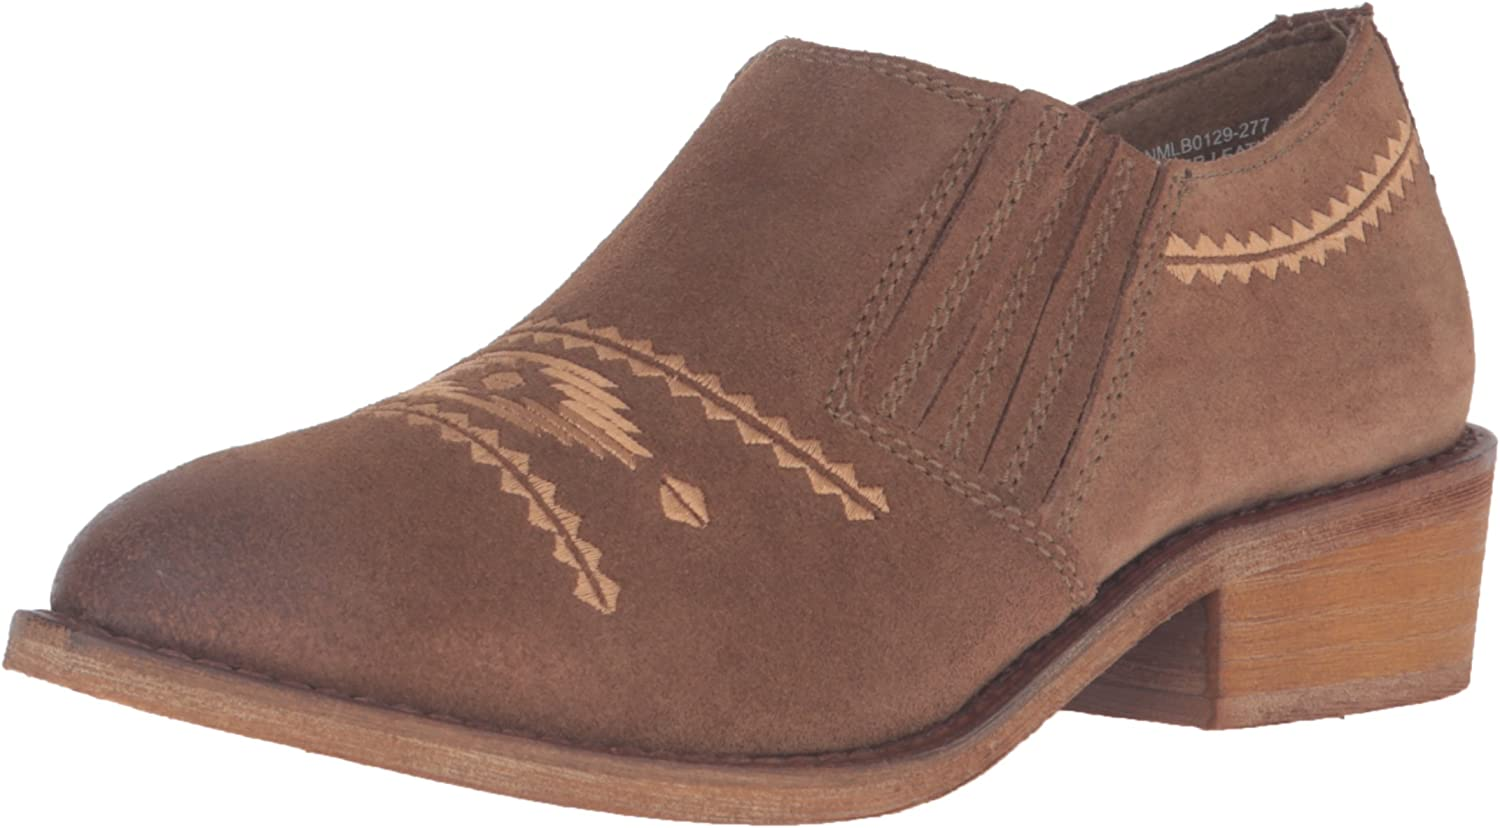 Naughty Monkey Womens Agnes Ankle Bootie